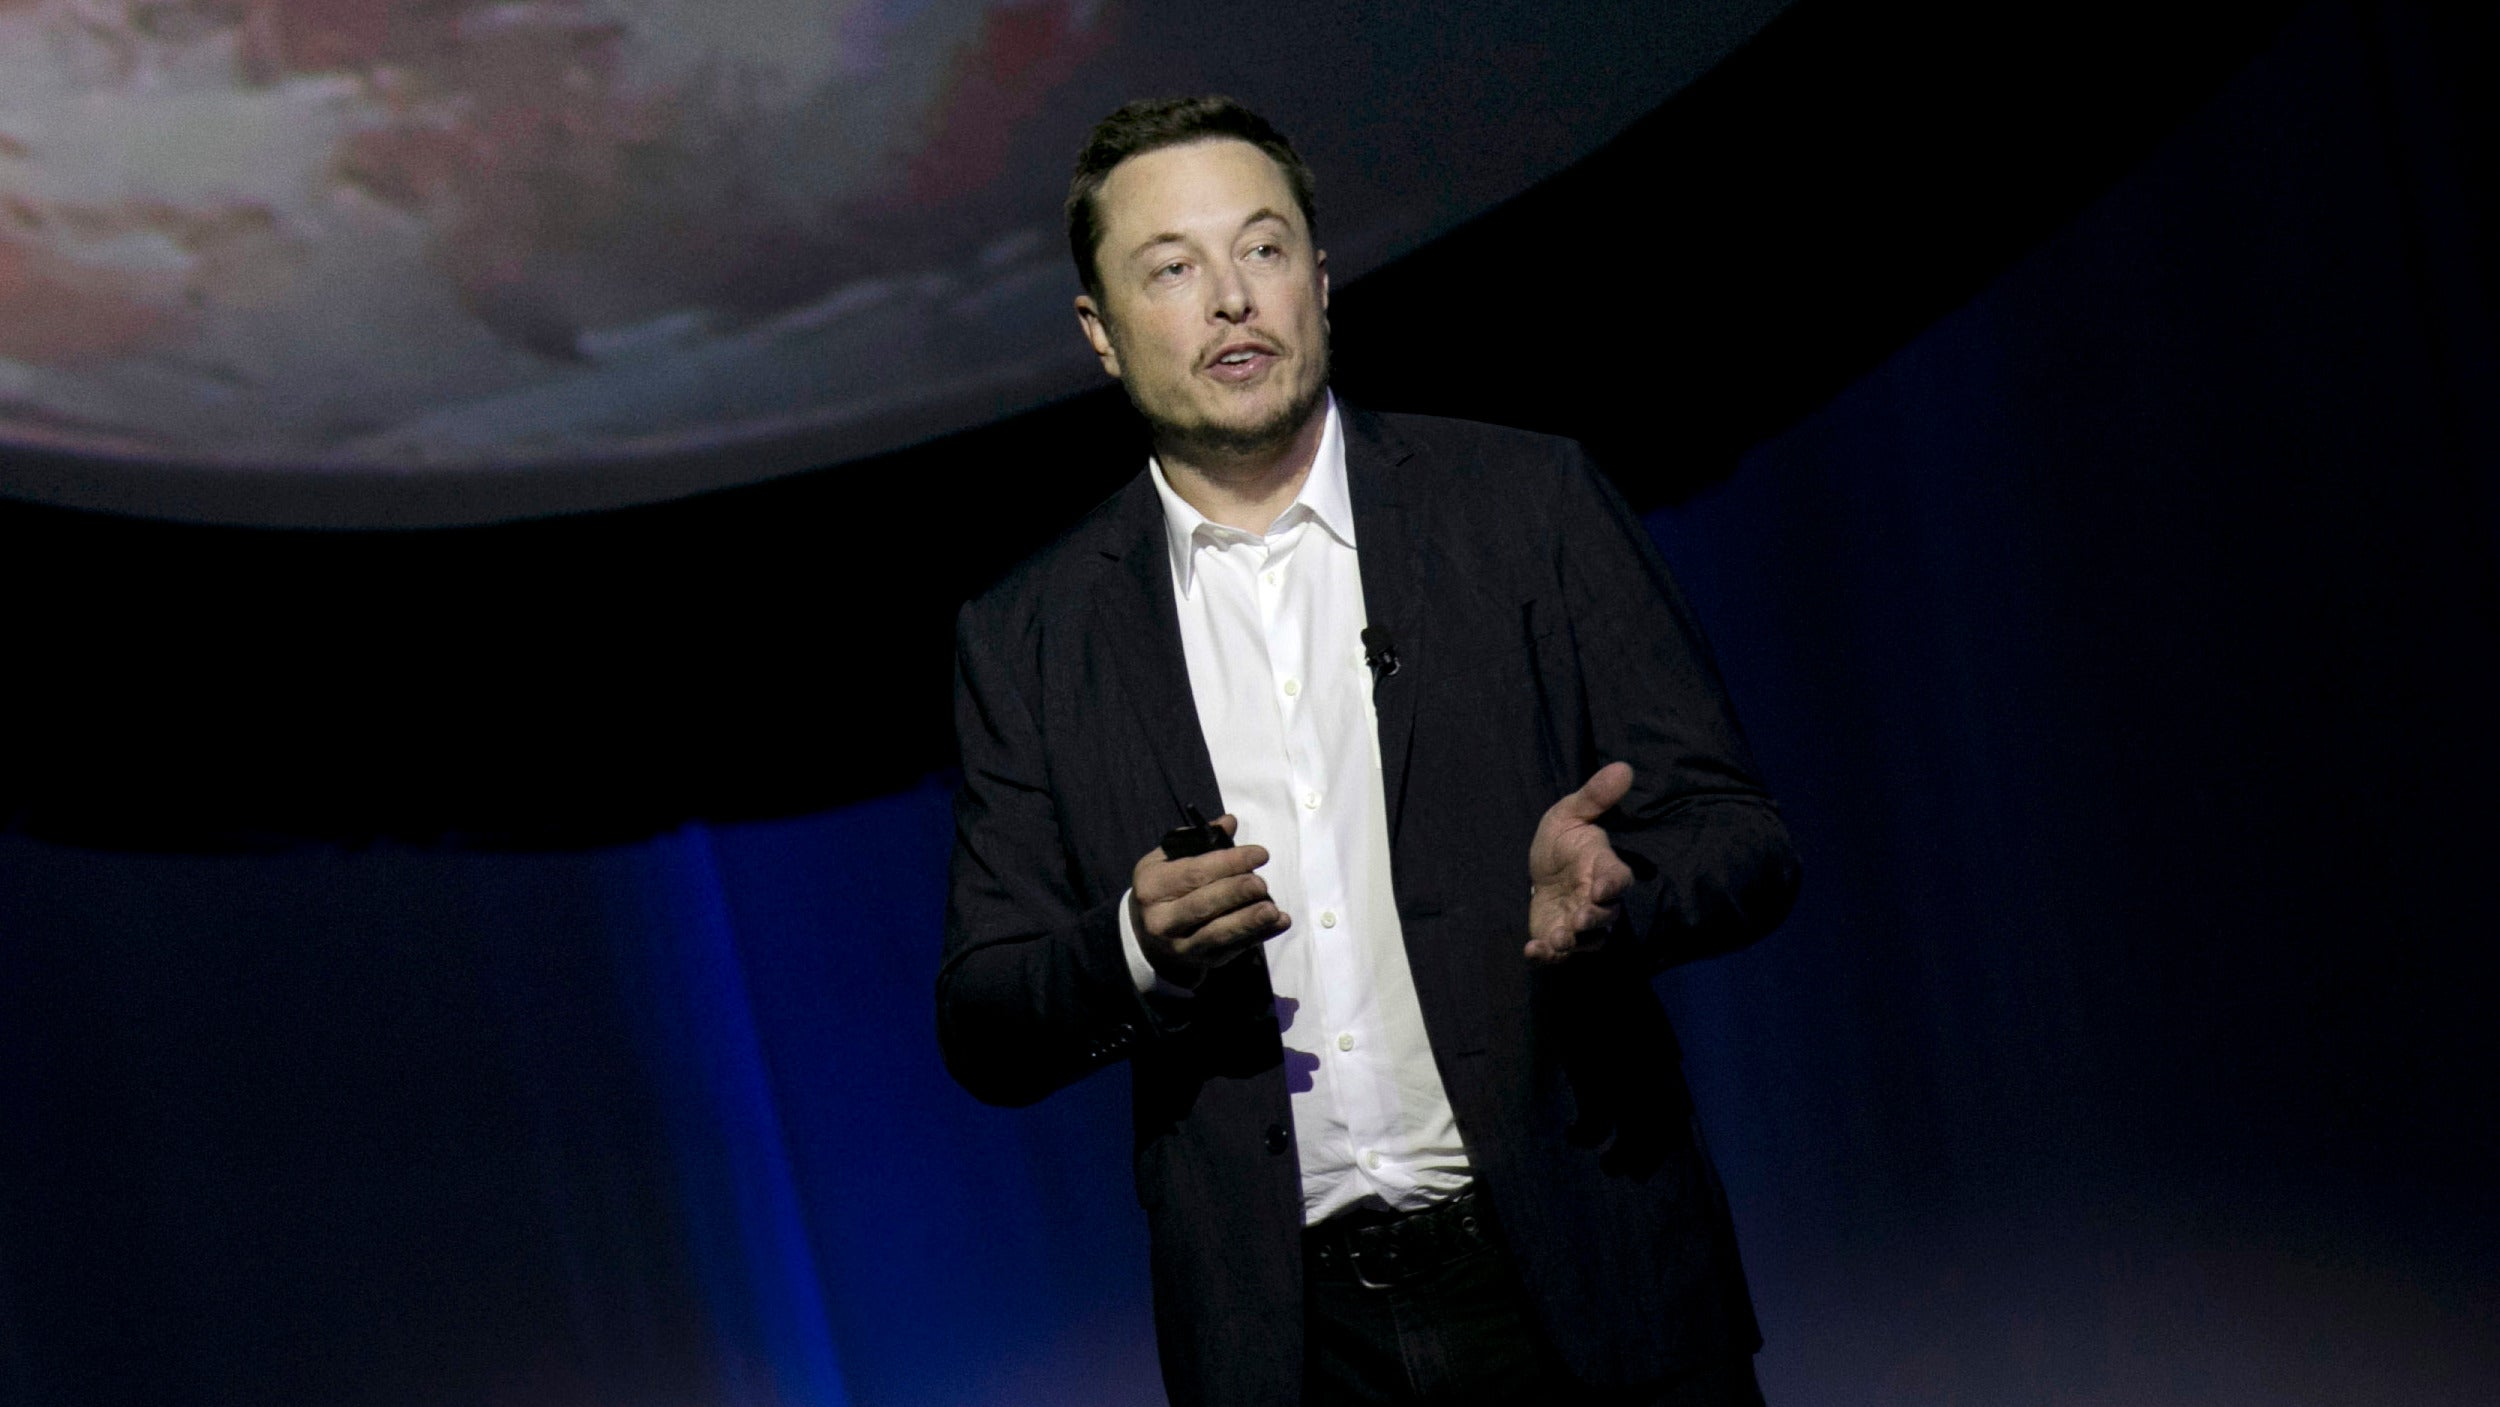 Watch Elon Musk Announce How He'll Colonise Mars And The Moon